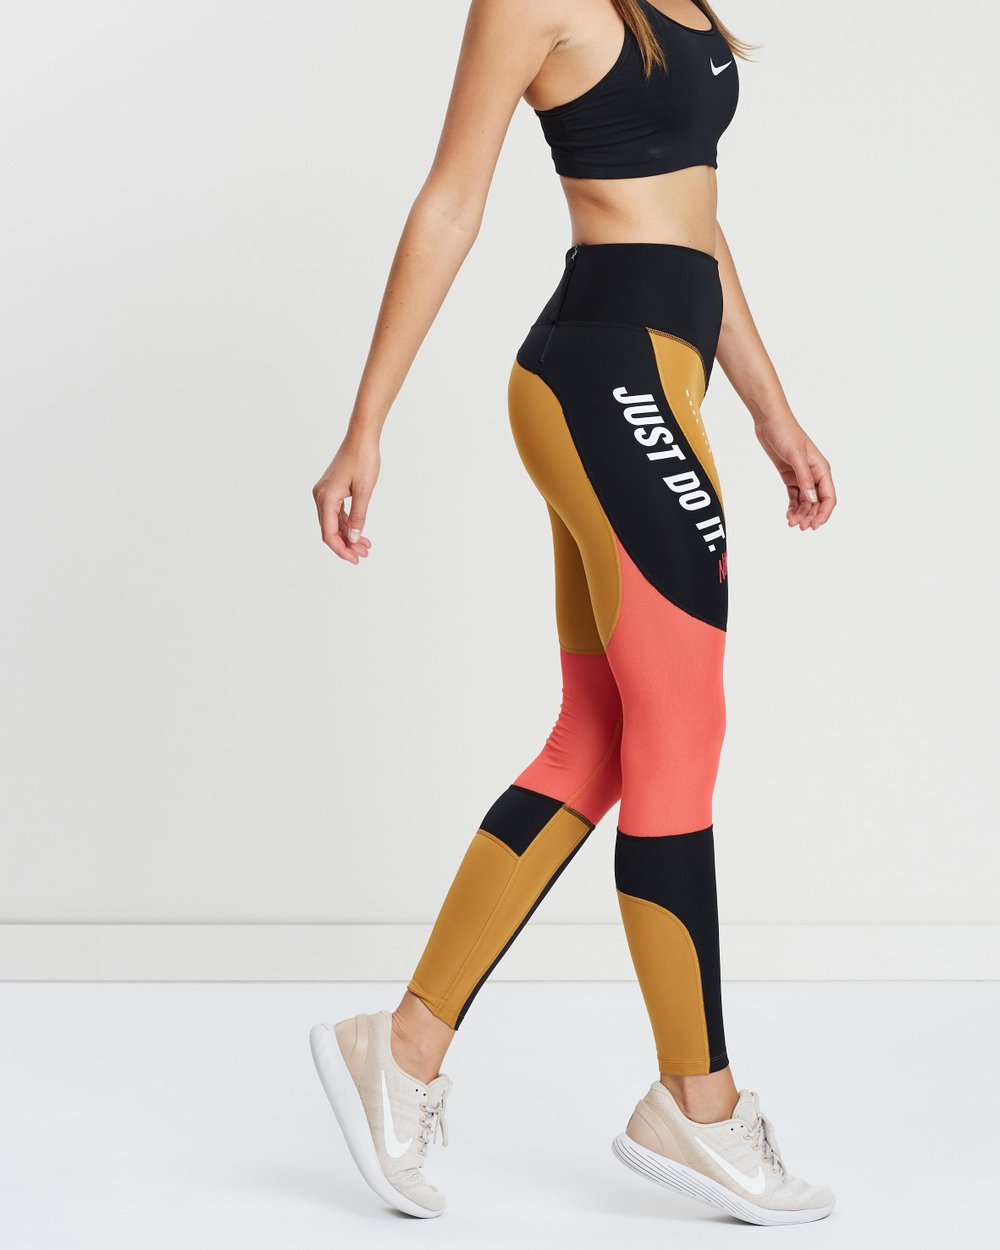 6799bc50337e2 Dri-FIT Power Graphic Training Tights by Nike Online | THE ICONIC |  Australia